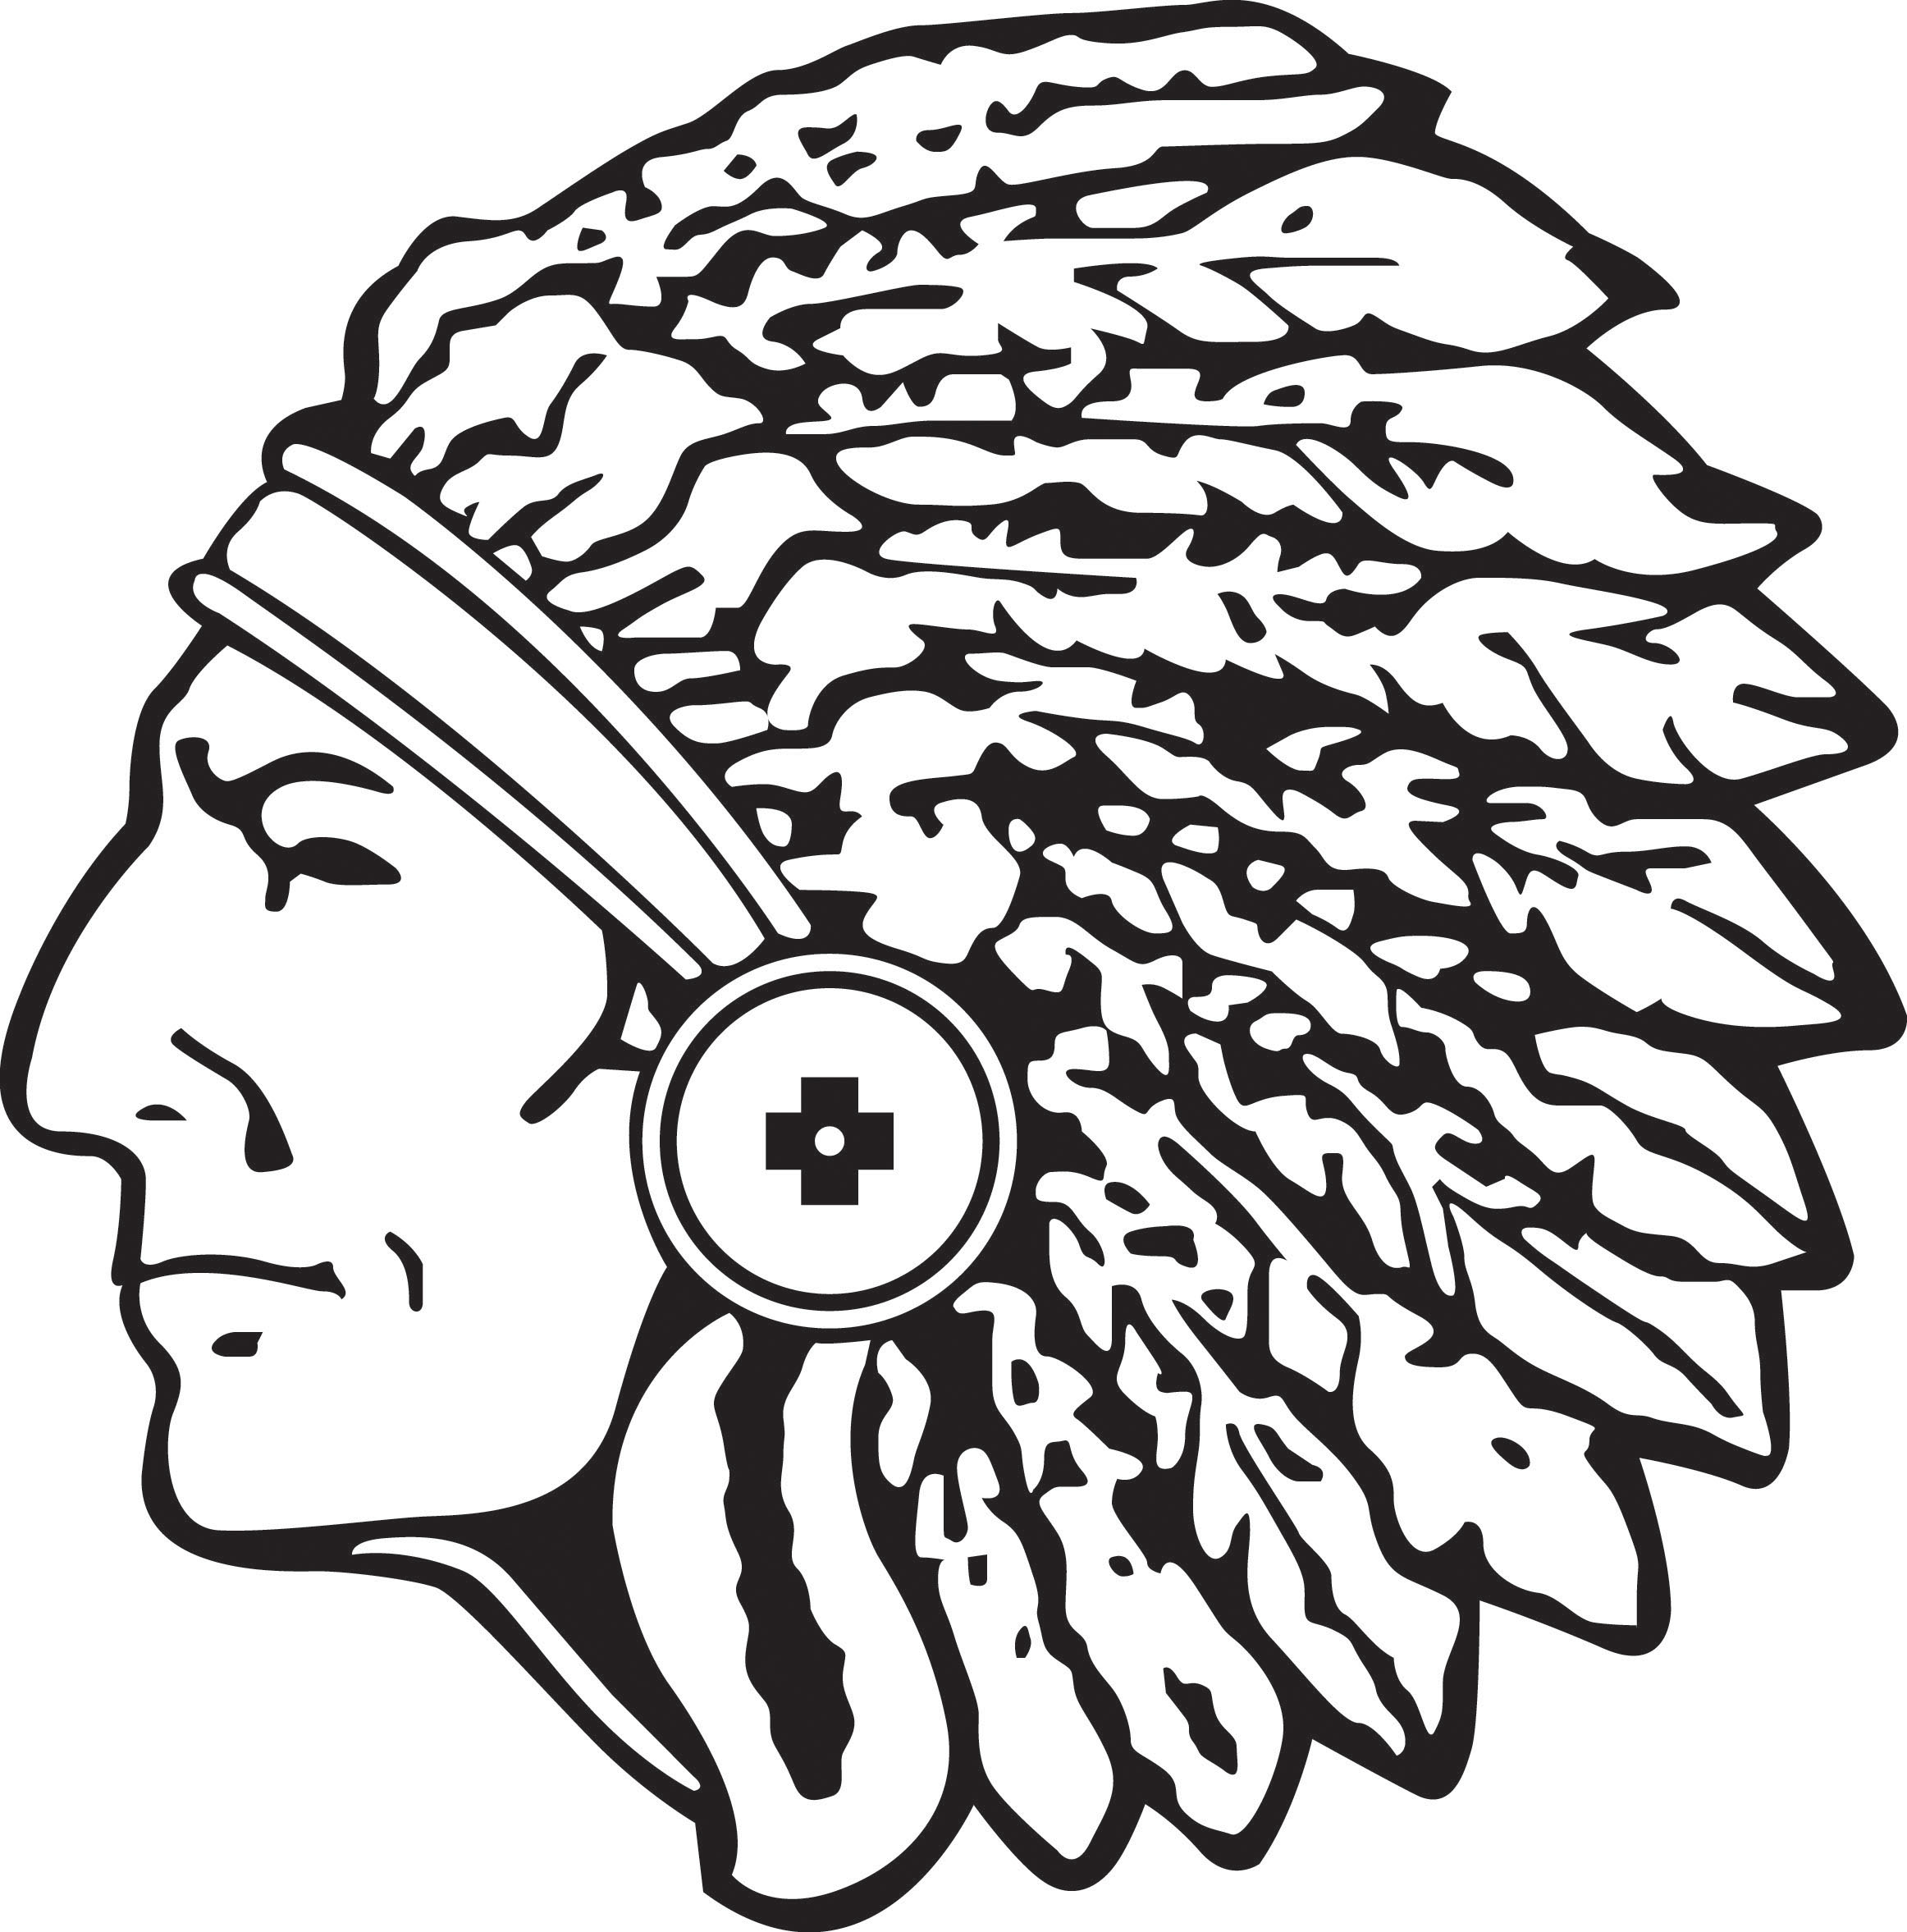 indian head silhouette clipart clipart kid indian chief logan indian chief logo download